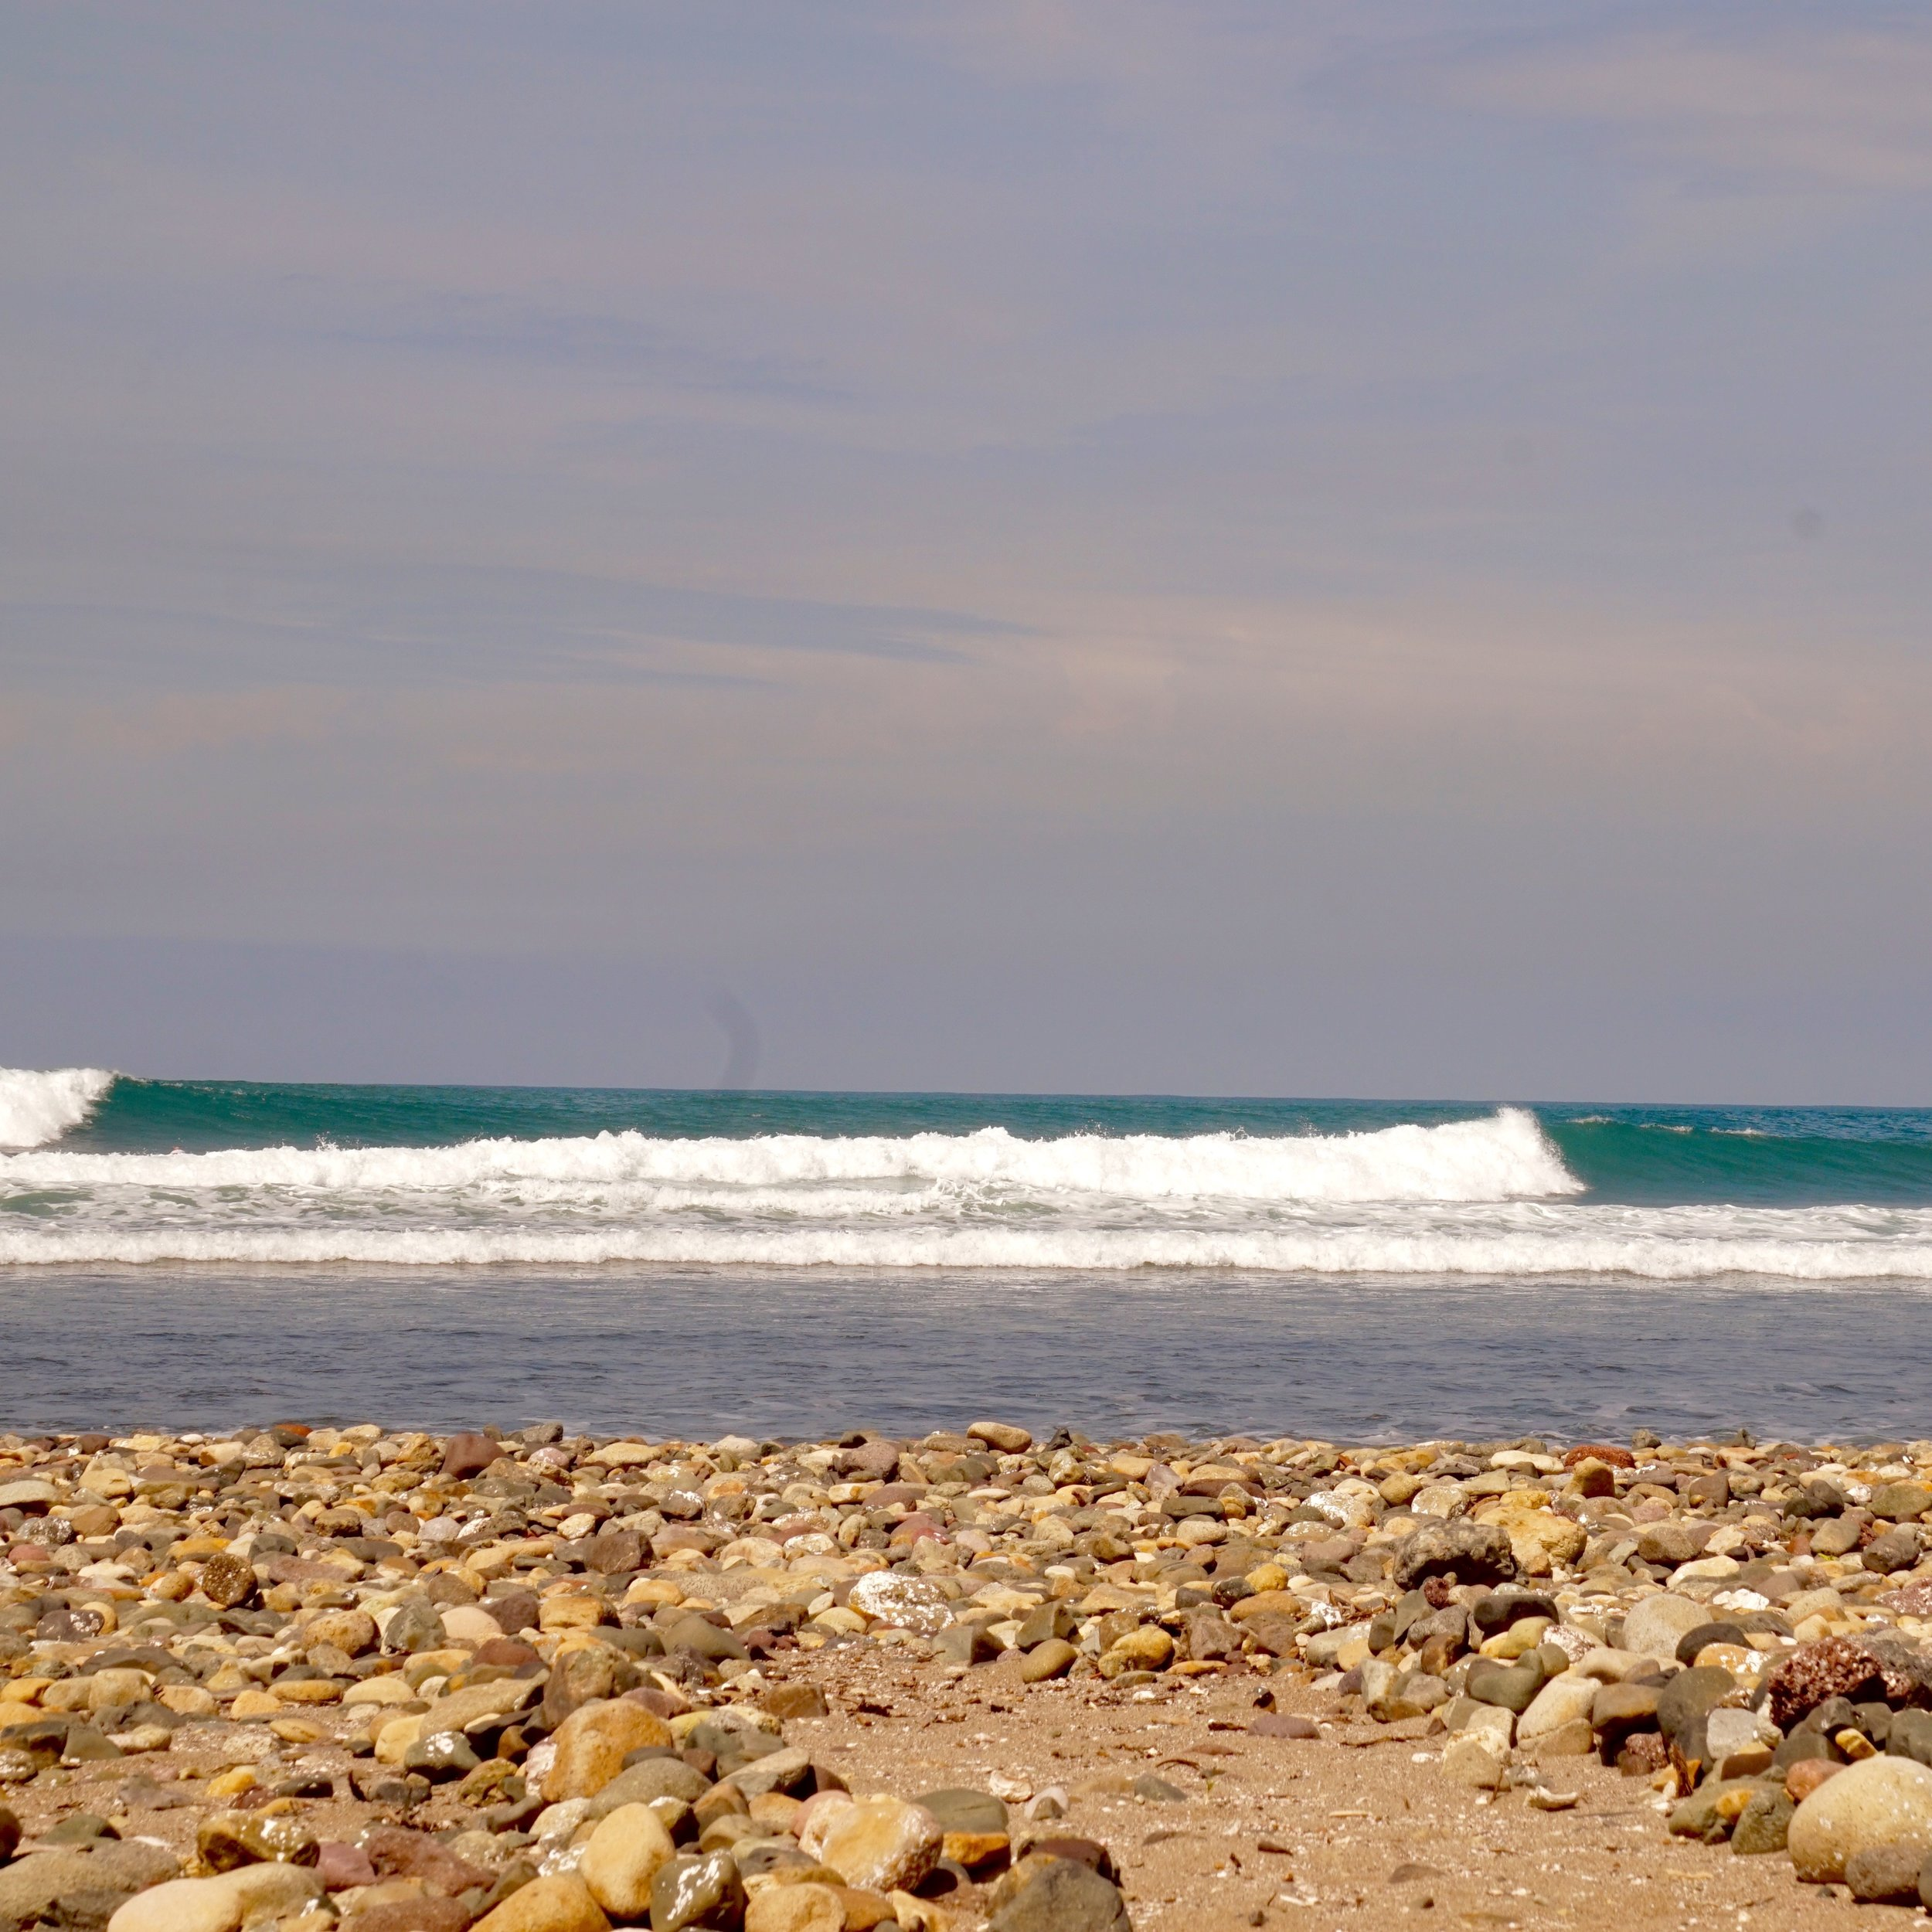 Surf at The Ranch - twenty people out on a weekday. Busy but a beautiful, playful wave with some kick when it gets big.